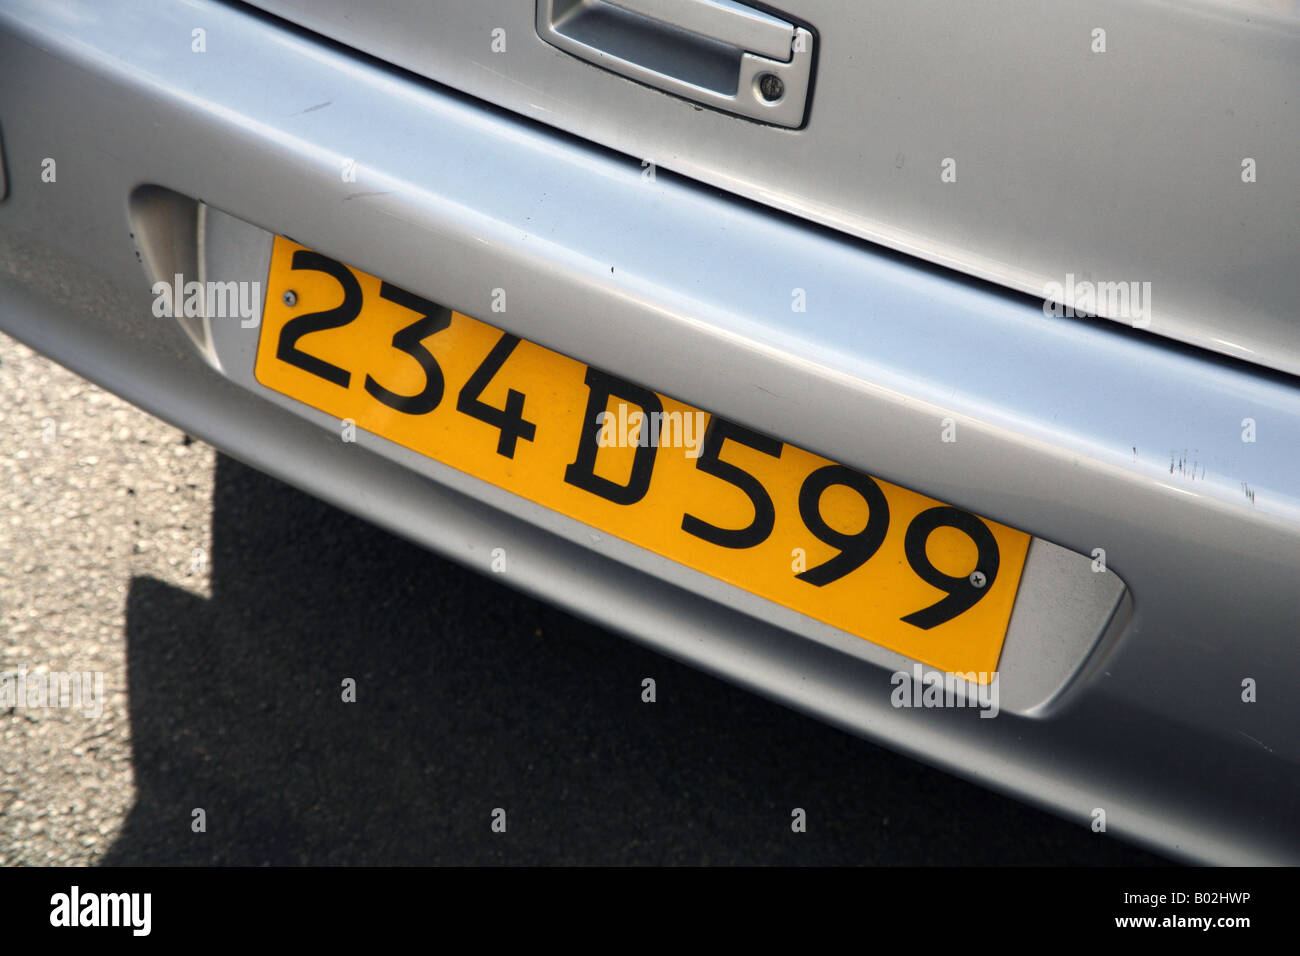 Diplomatic number plate on car in London Stock Photo, Royalty Free ...